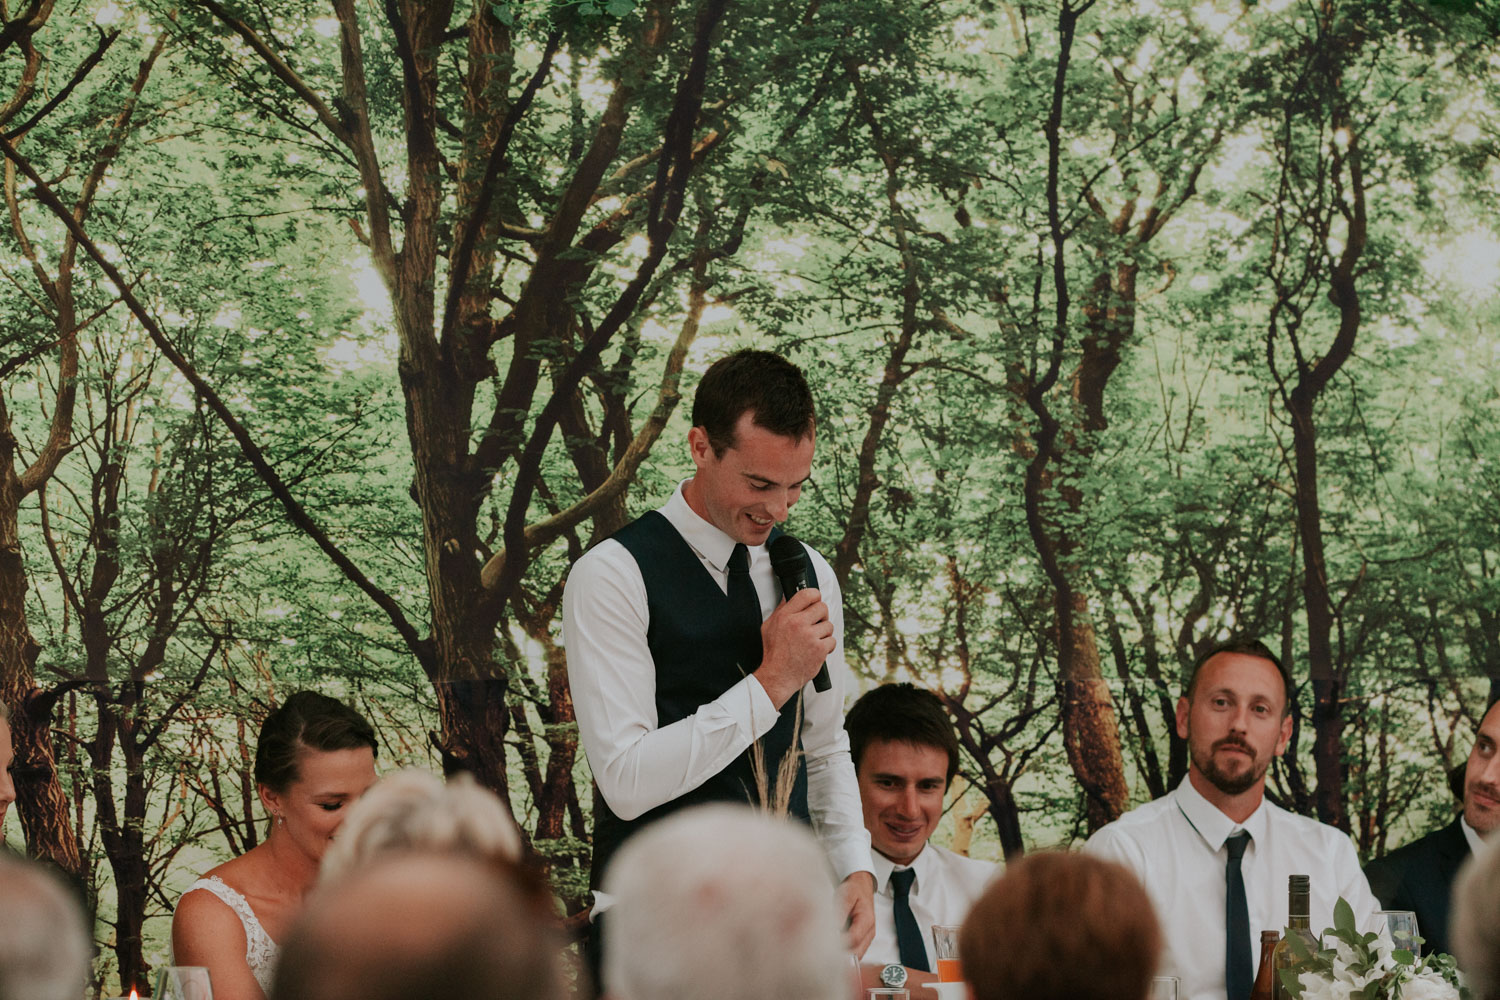 Groom speaking at his wedding